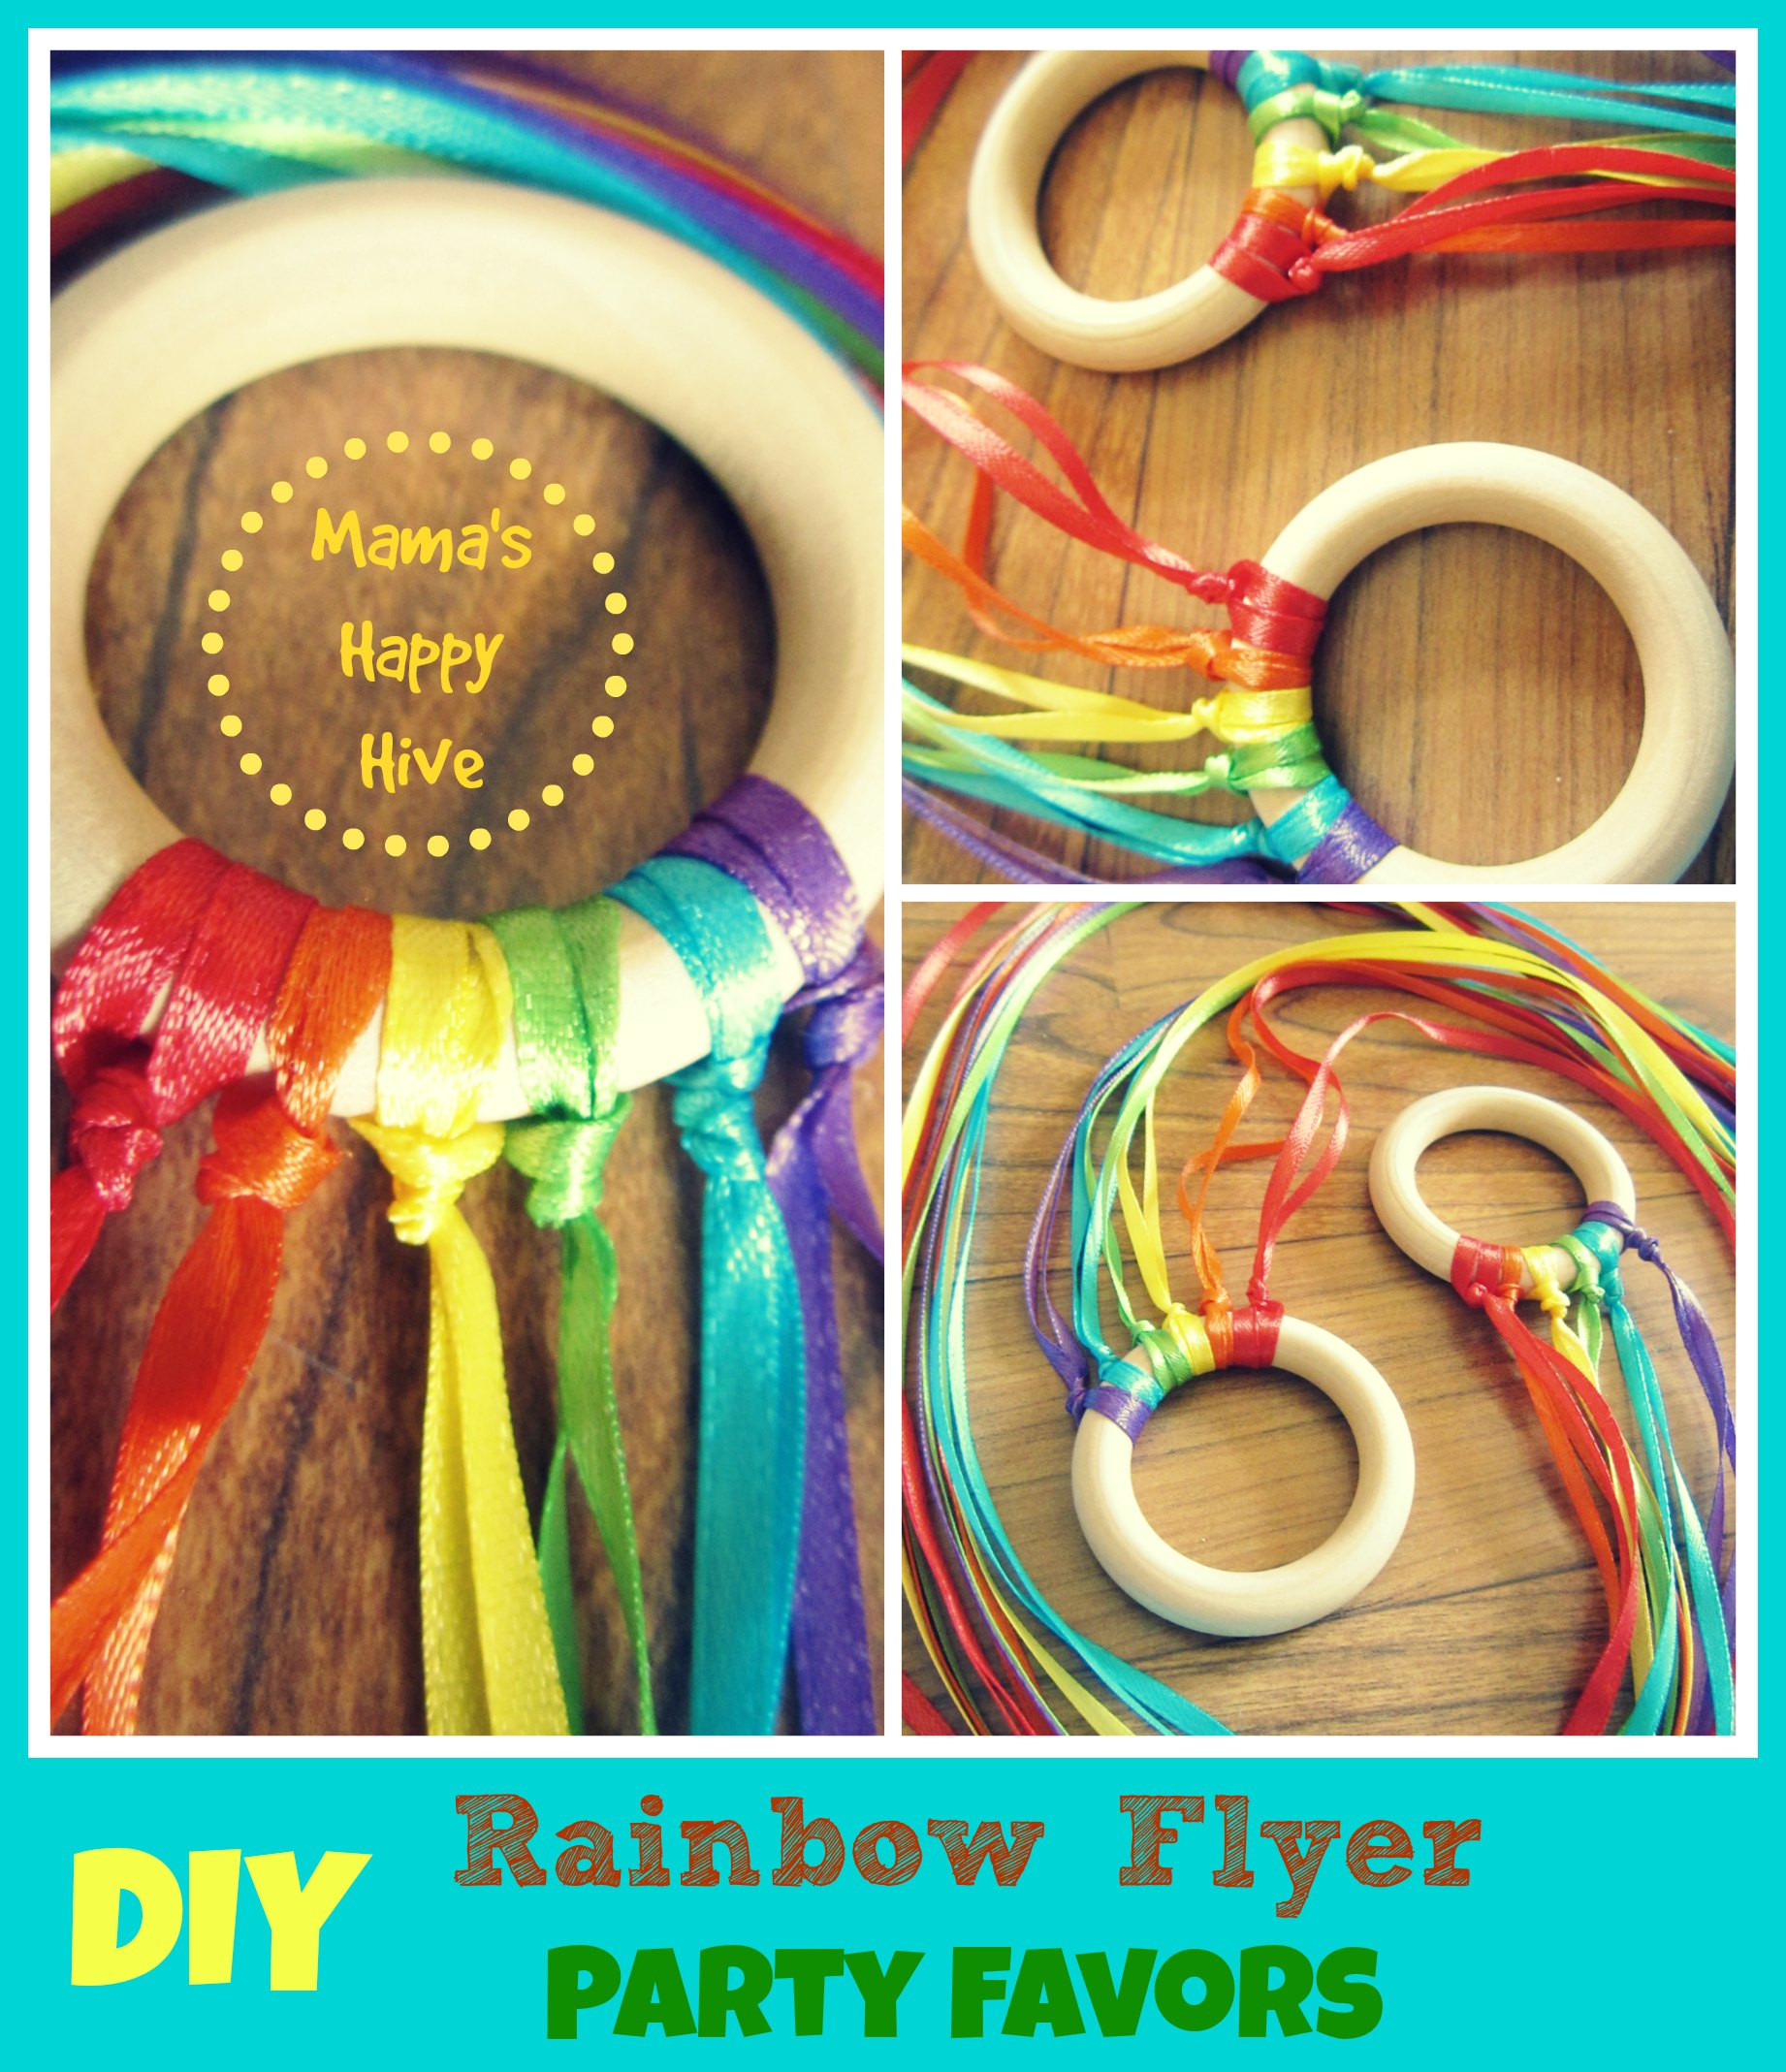 Best ideas about DIY Party Favors . Save or Pin DIY Party Favors Mini Rainbow Flyer Mama s Happy Hive Now.